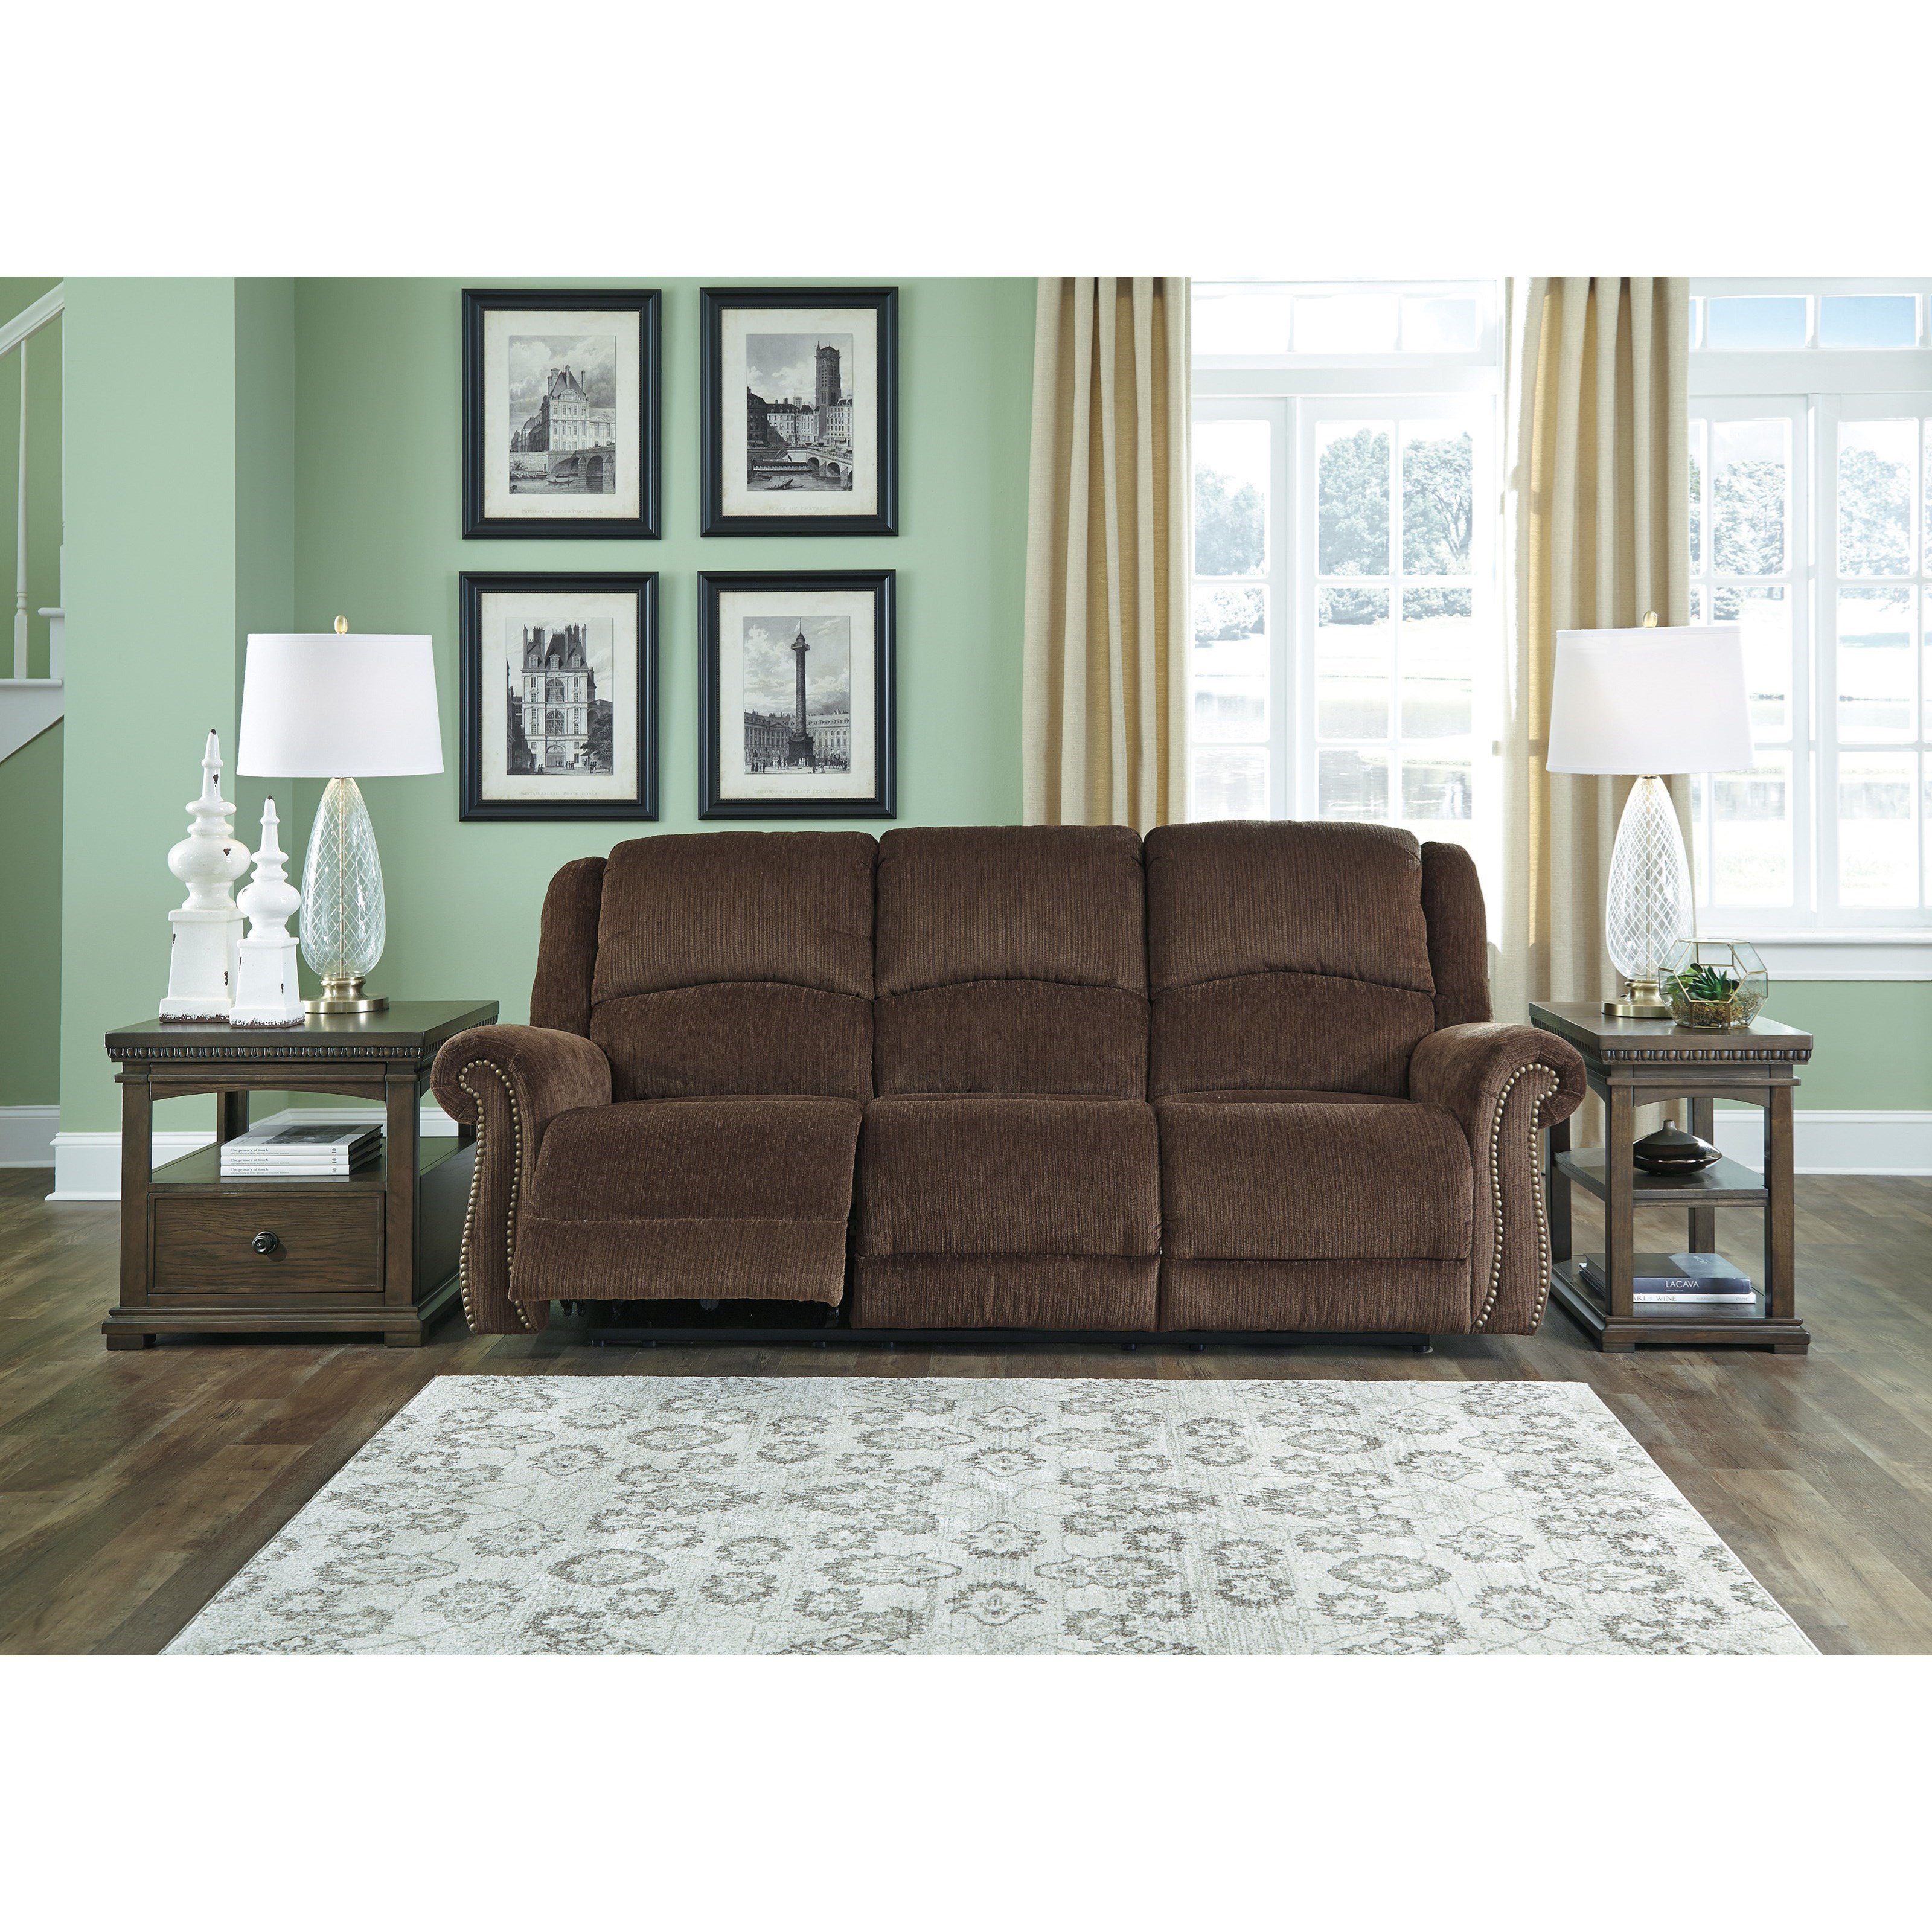 Signature Design By Ashley Goodlow 7900315 Transitional Power Reclining Sofa W Adjustable